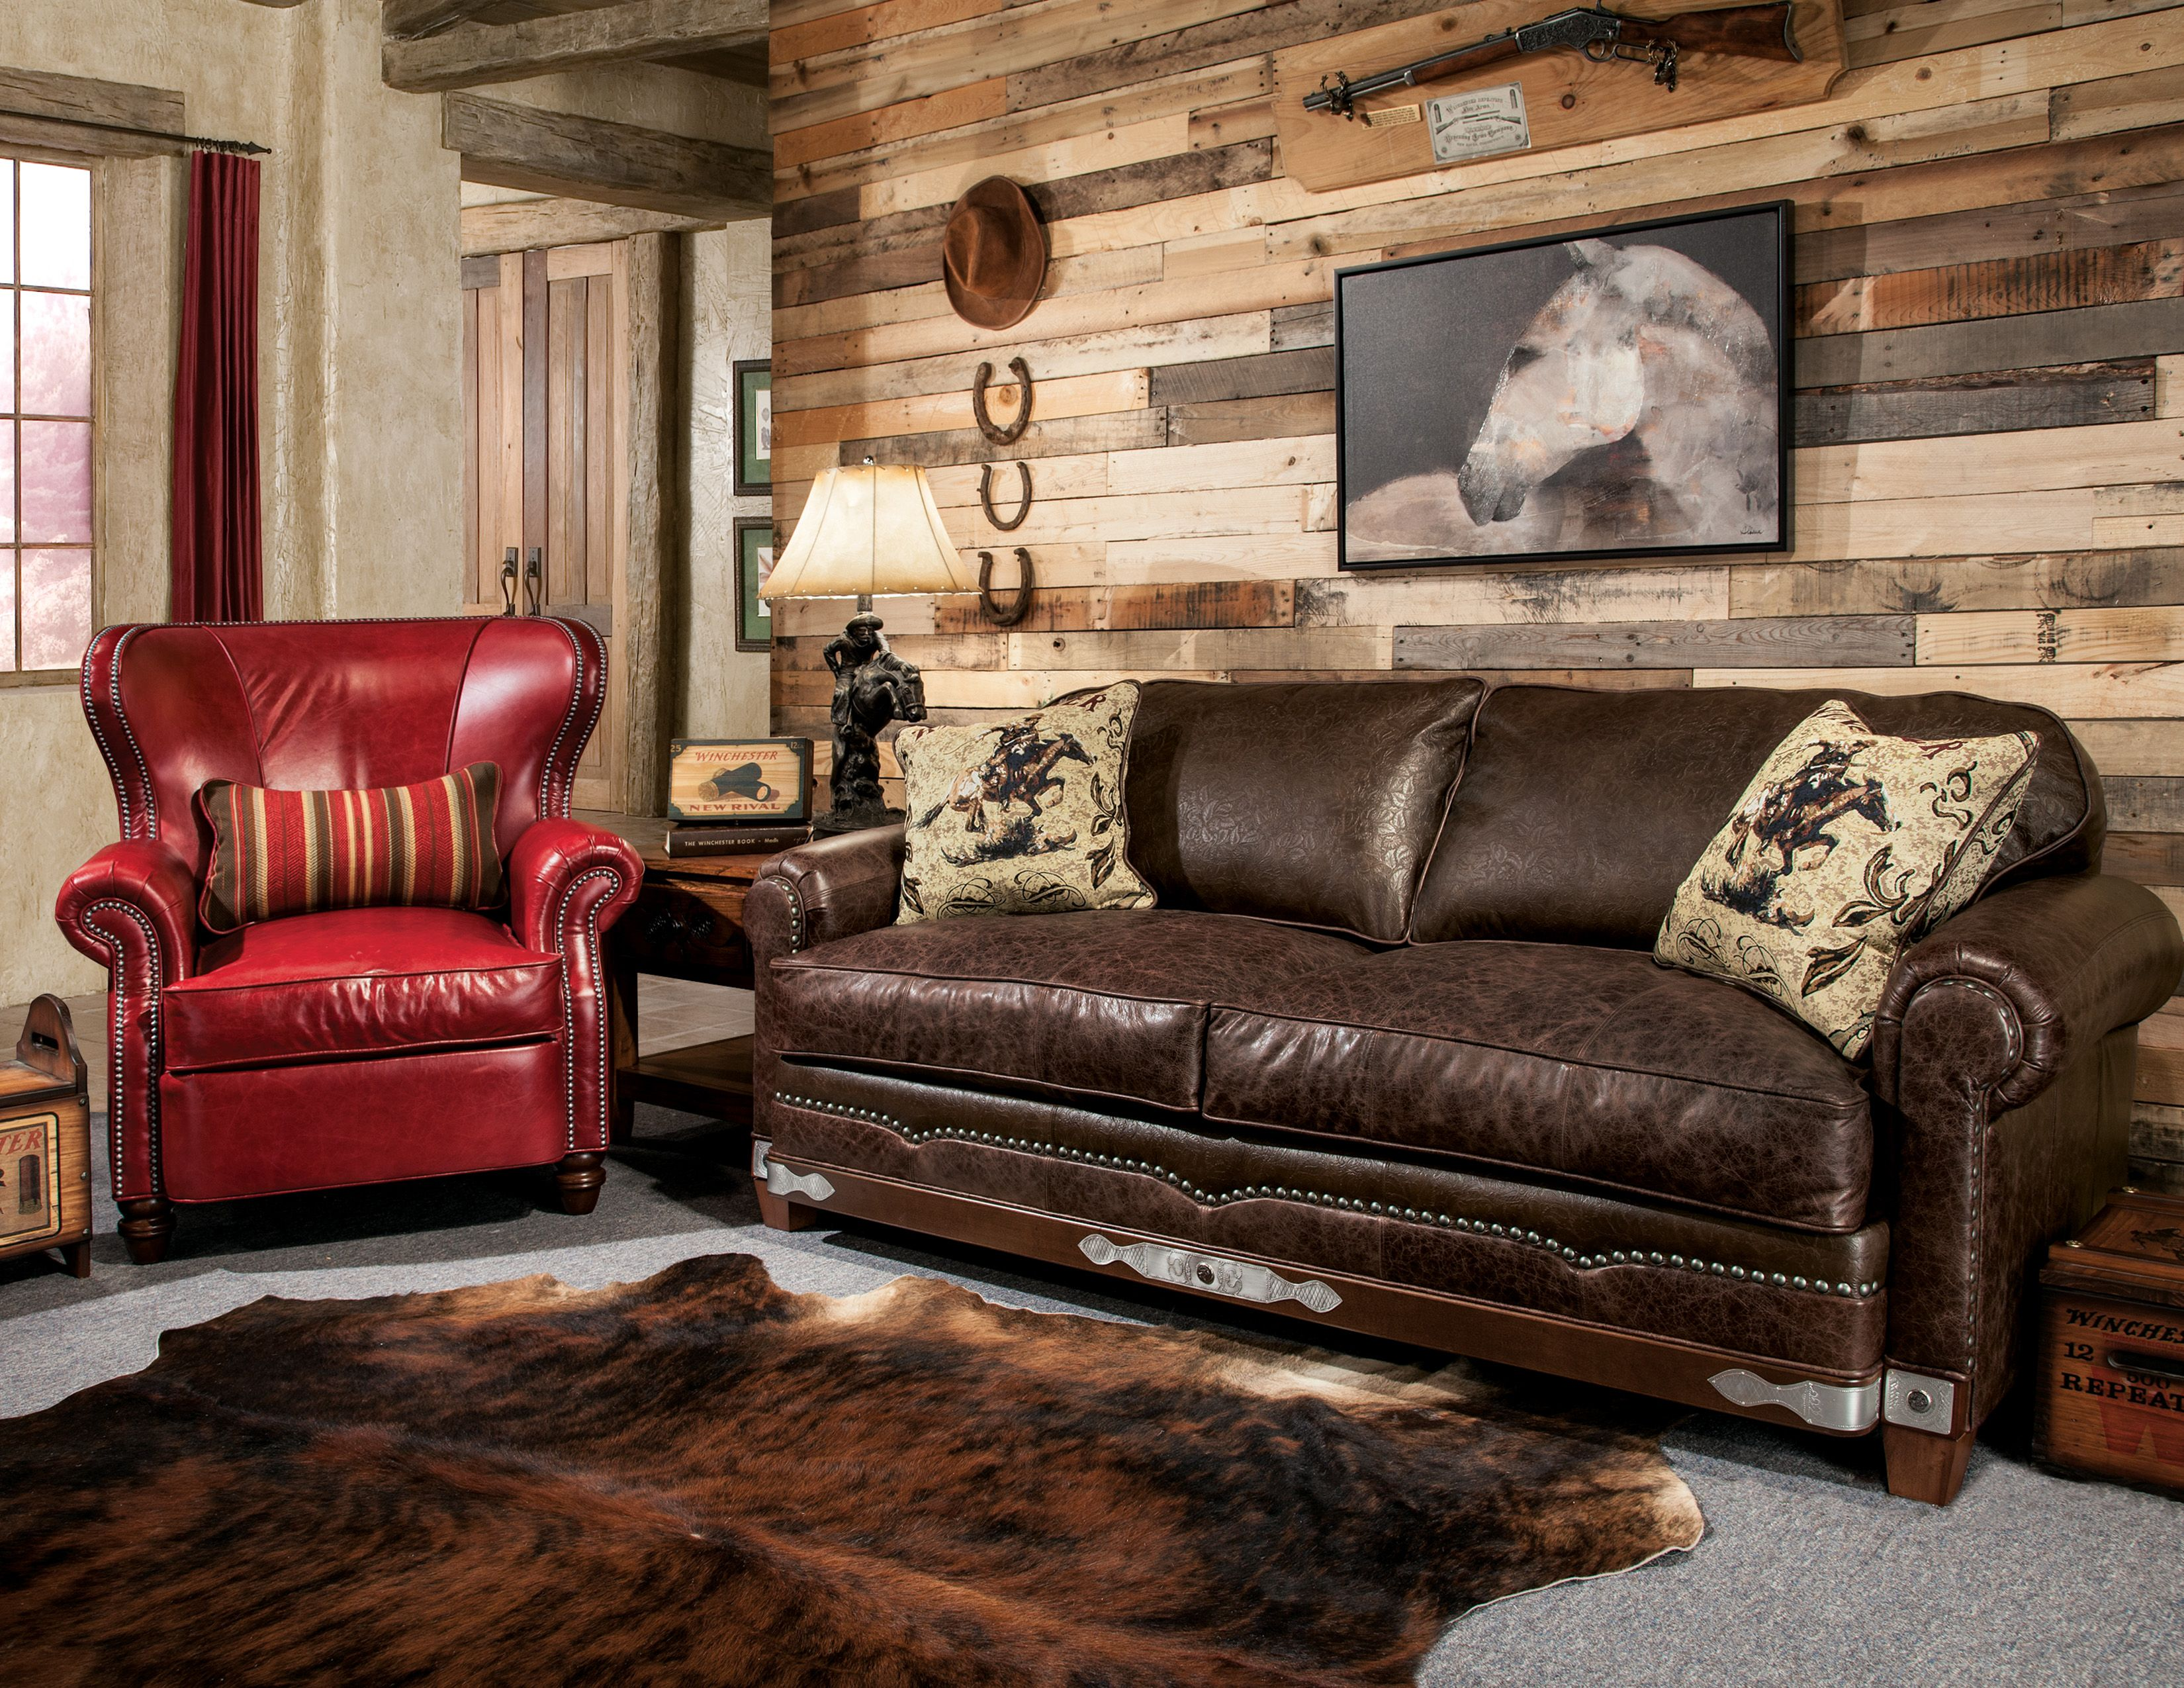 Nice Rustic Red Leather Sofa Unique Rustic Red Leather Sofa 46 Living Room Sofa Inspiration Wi Living Room Inspiration Rustic Rustic Sofa Living Room Leather